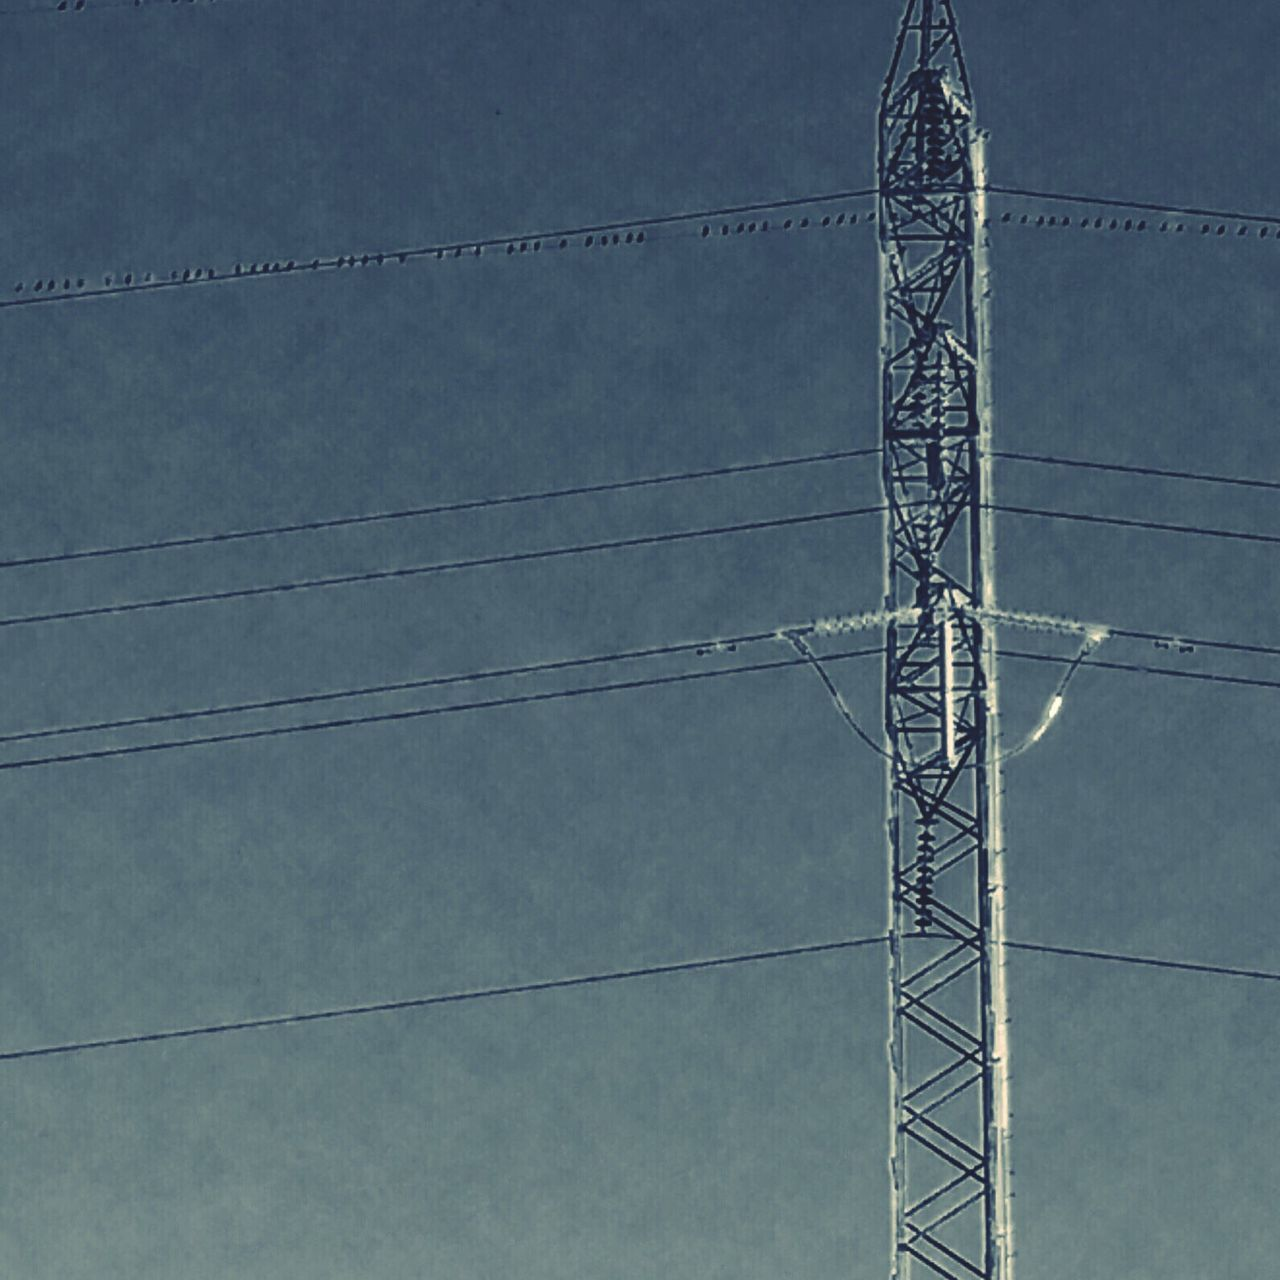 cable, electricity, power line, connection, power supply, electricity pylon, low angle view, day, no people, fuel and power generation, outdoors, technology, parallel, sky